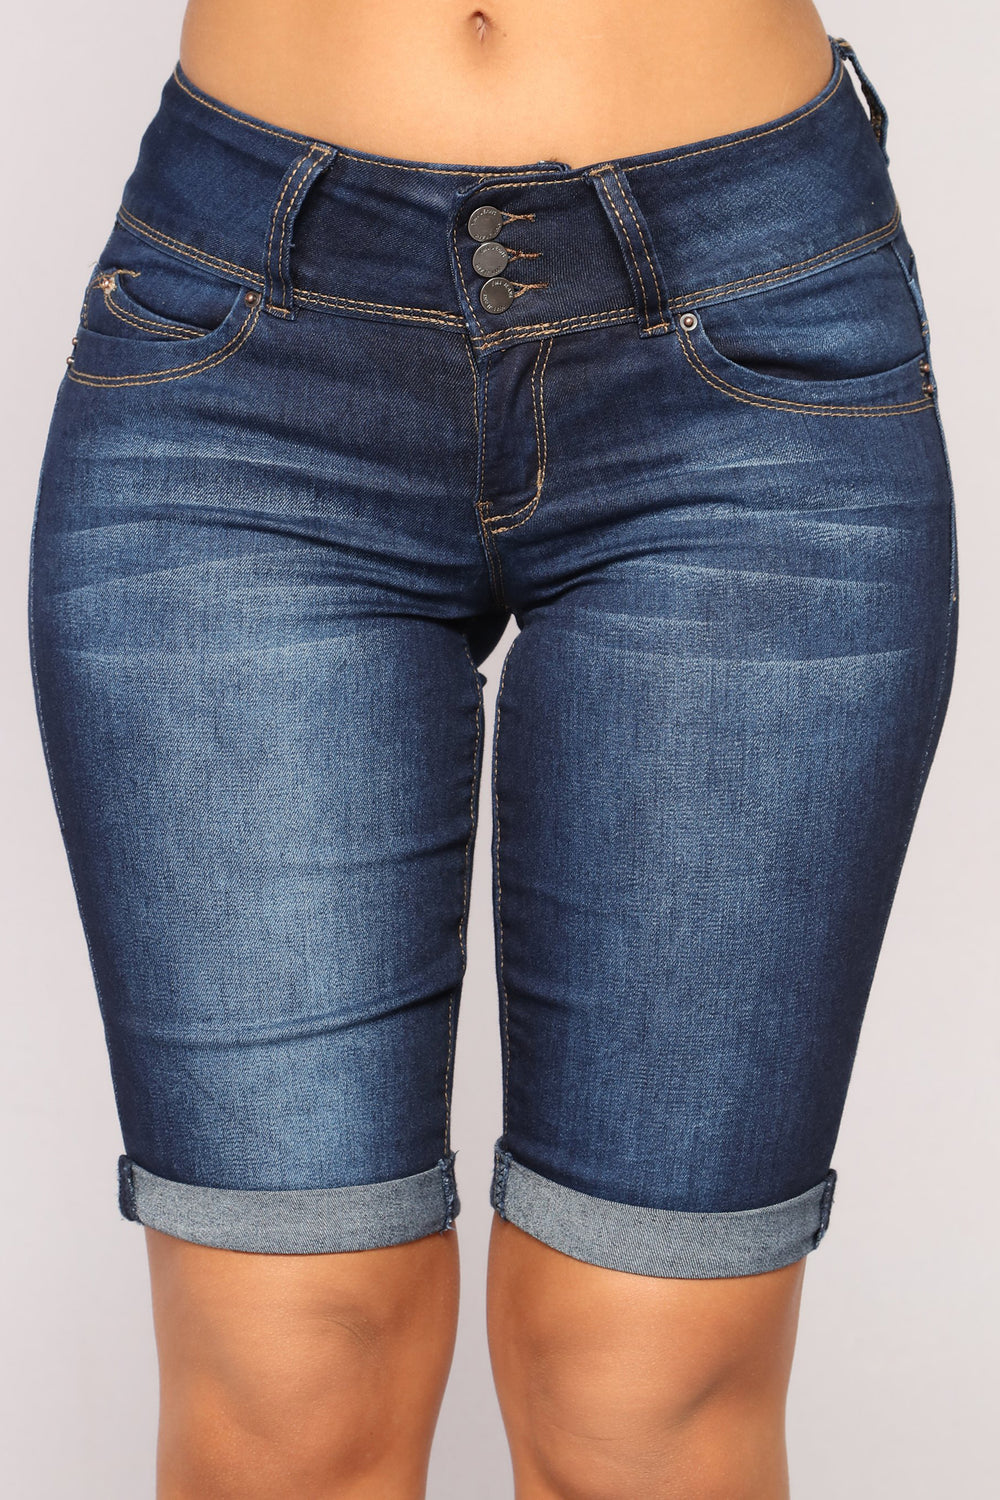 From The Ground Up Denim Bermudas - Dark Denim